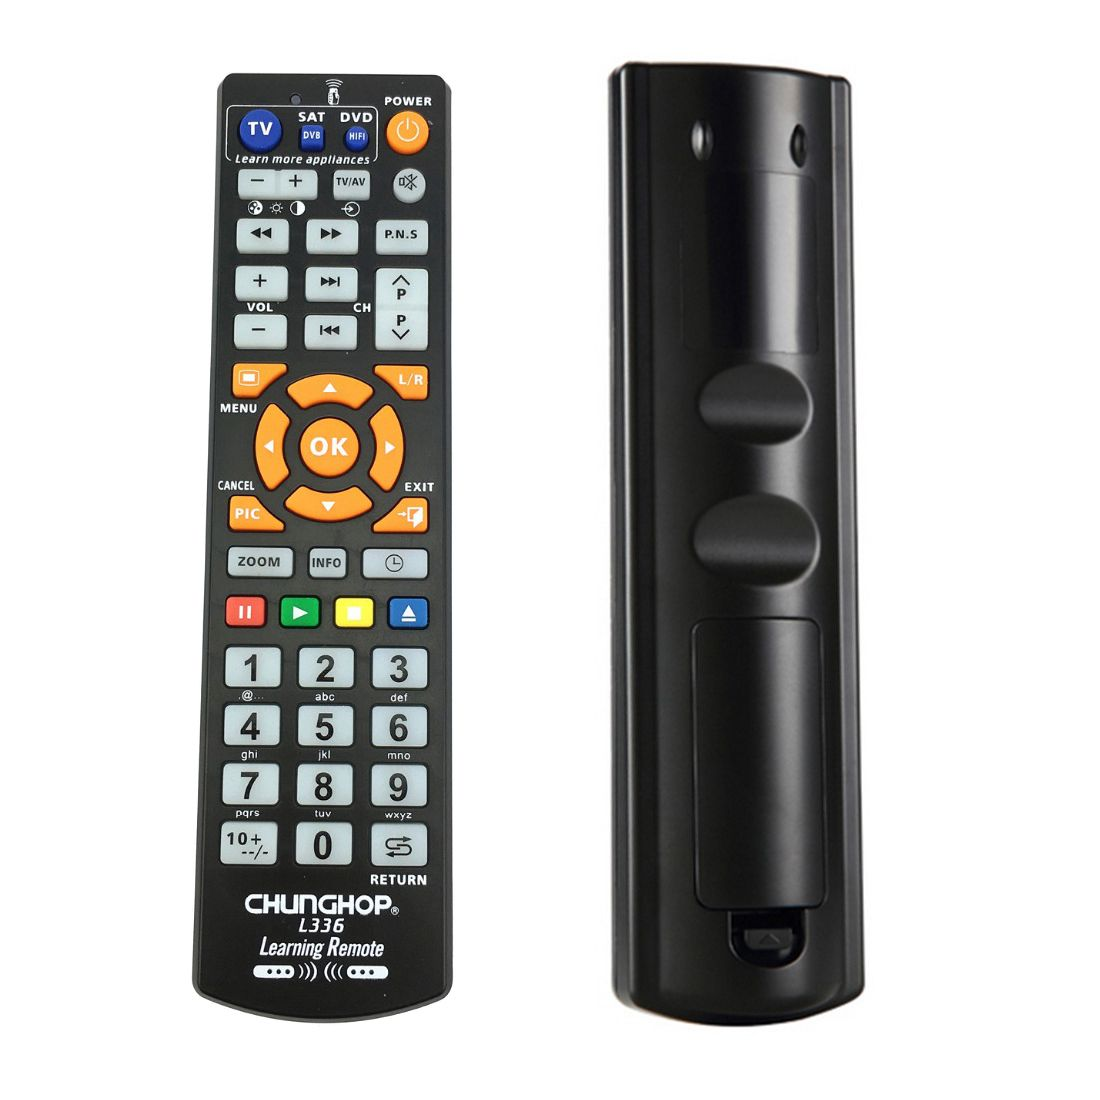 CHUNGHOP L336 Copy Smart Remote Control Controller With Learn Function For TV CBL DVD SAT learning chunghop rm l14 universal smart remote control with learn function for tv cbl dvd sat dvb controller copy